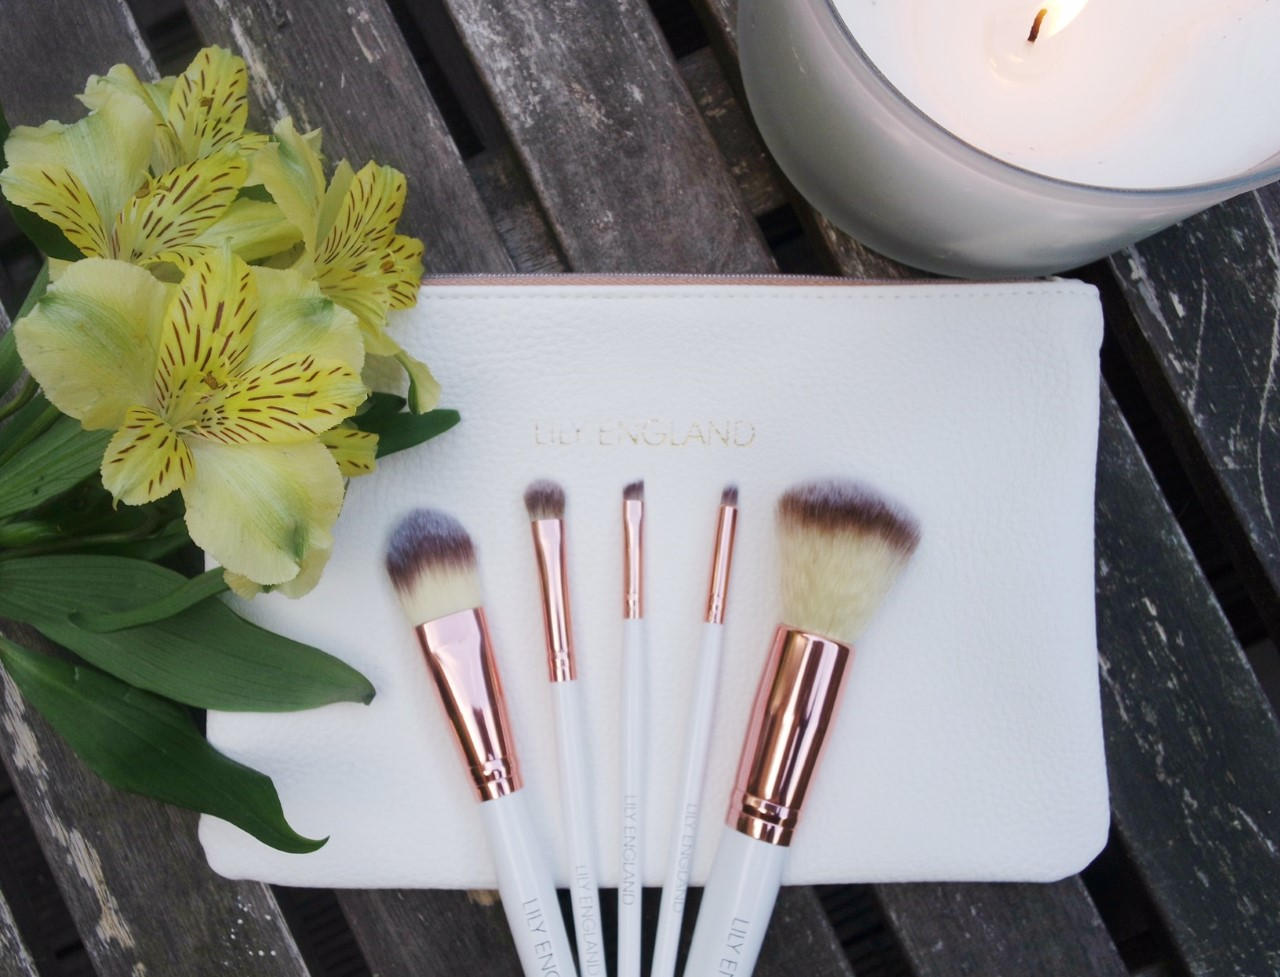 lily-england-makeup-brush-review-final.jpg?fit=1280,977